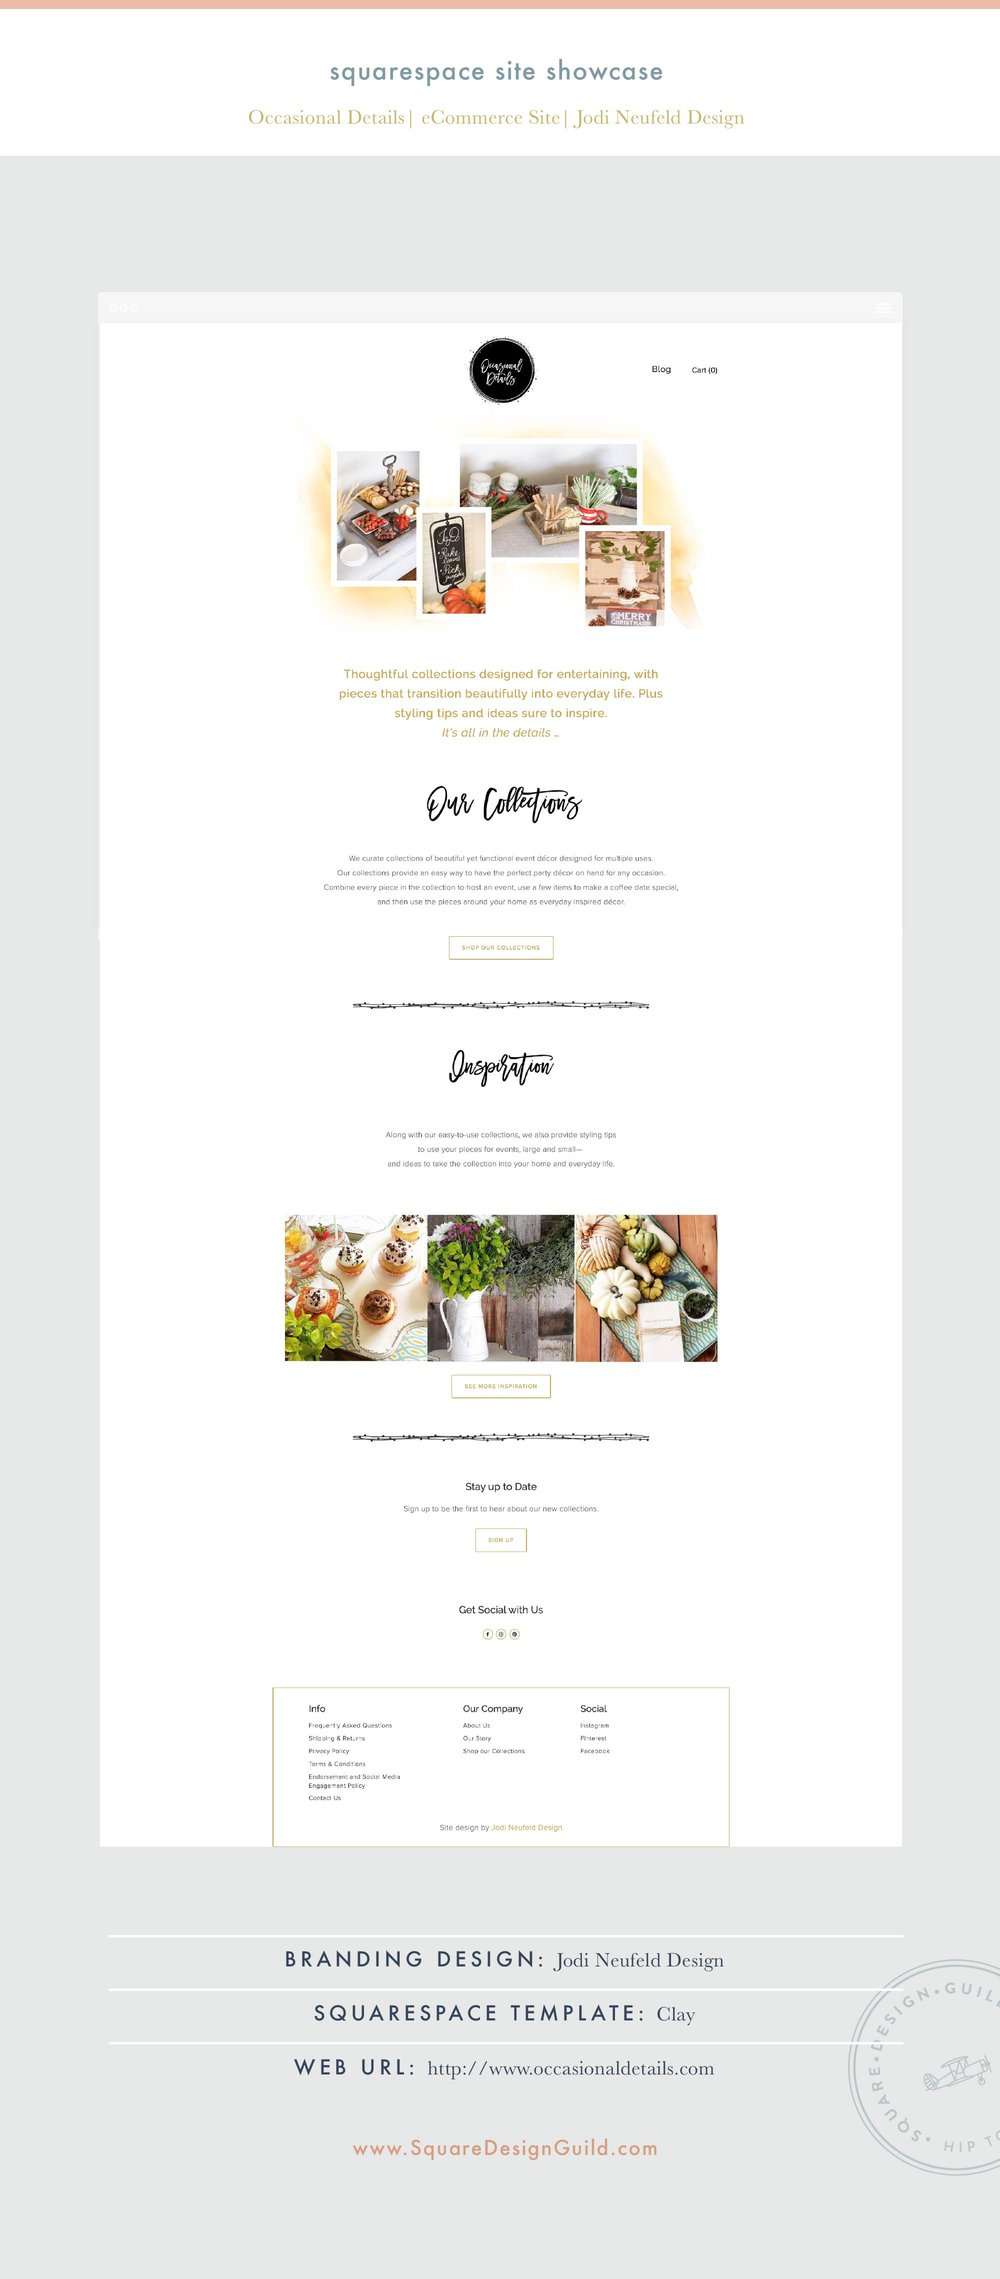 Square Design Guild | Squarespace Site Showcase | Occasional Details by Jodi Neufeld Design on Clay Template